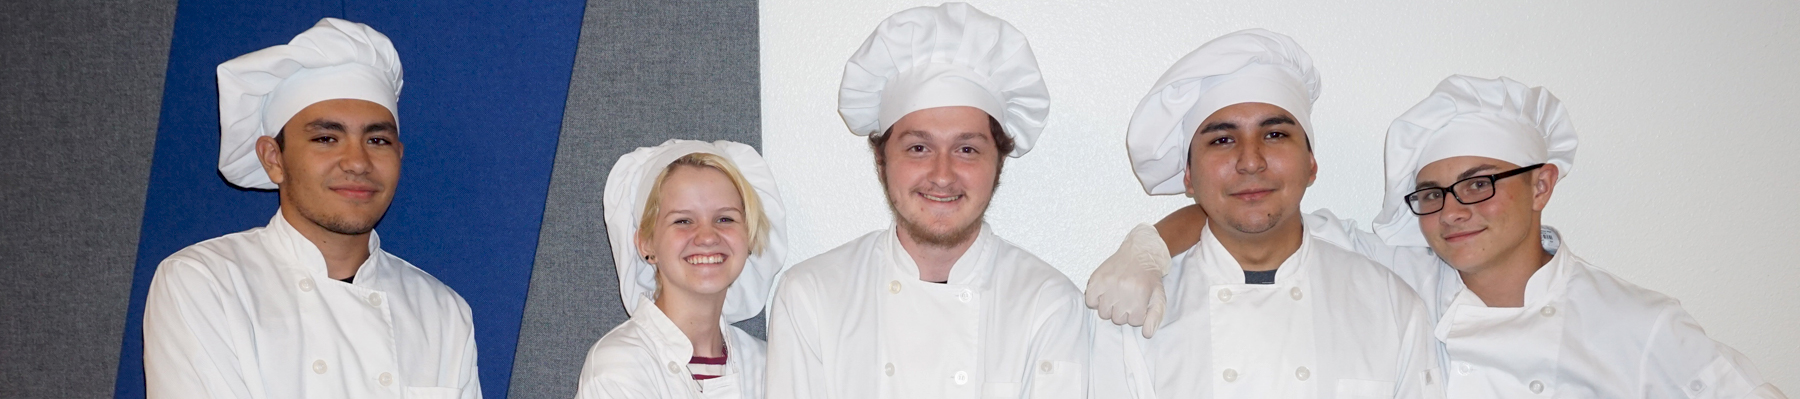 chef students